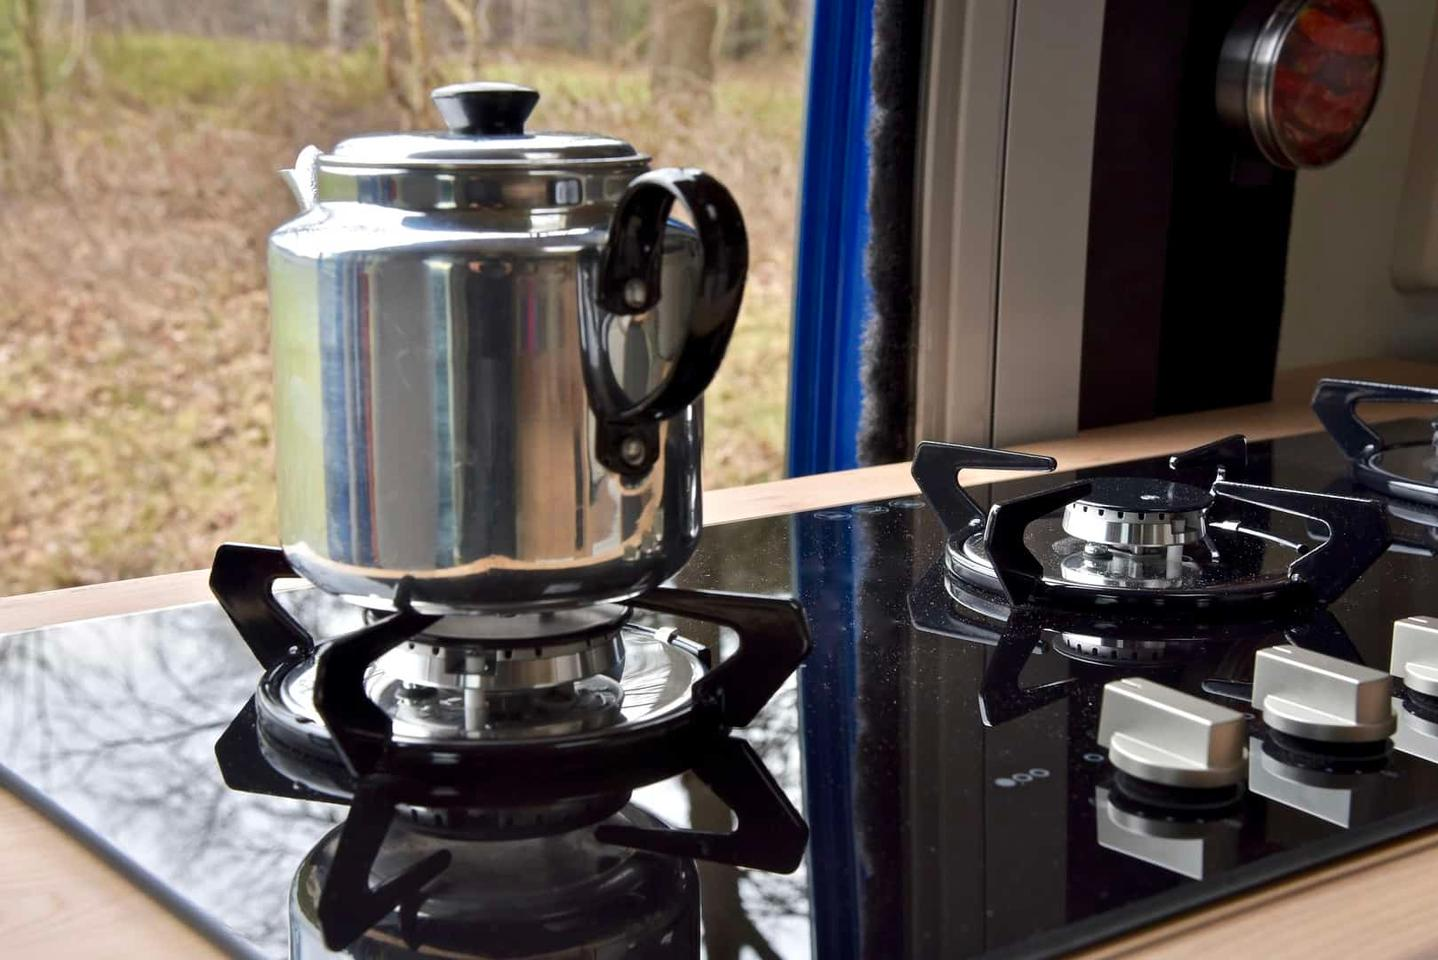 A kettle on the triple-burner stove